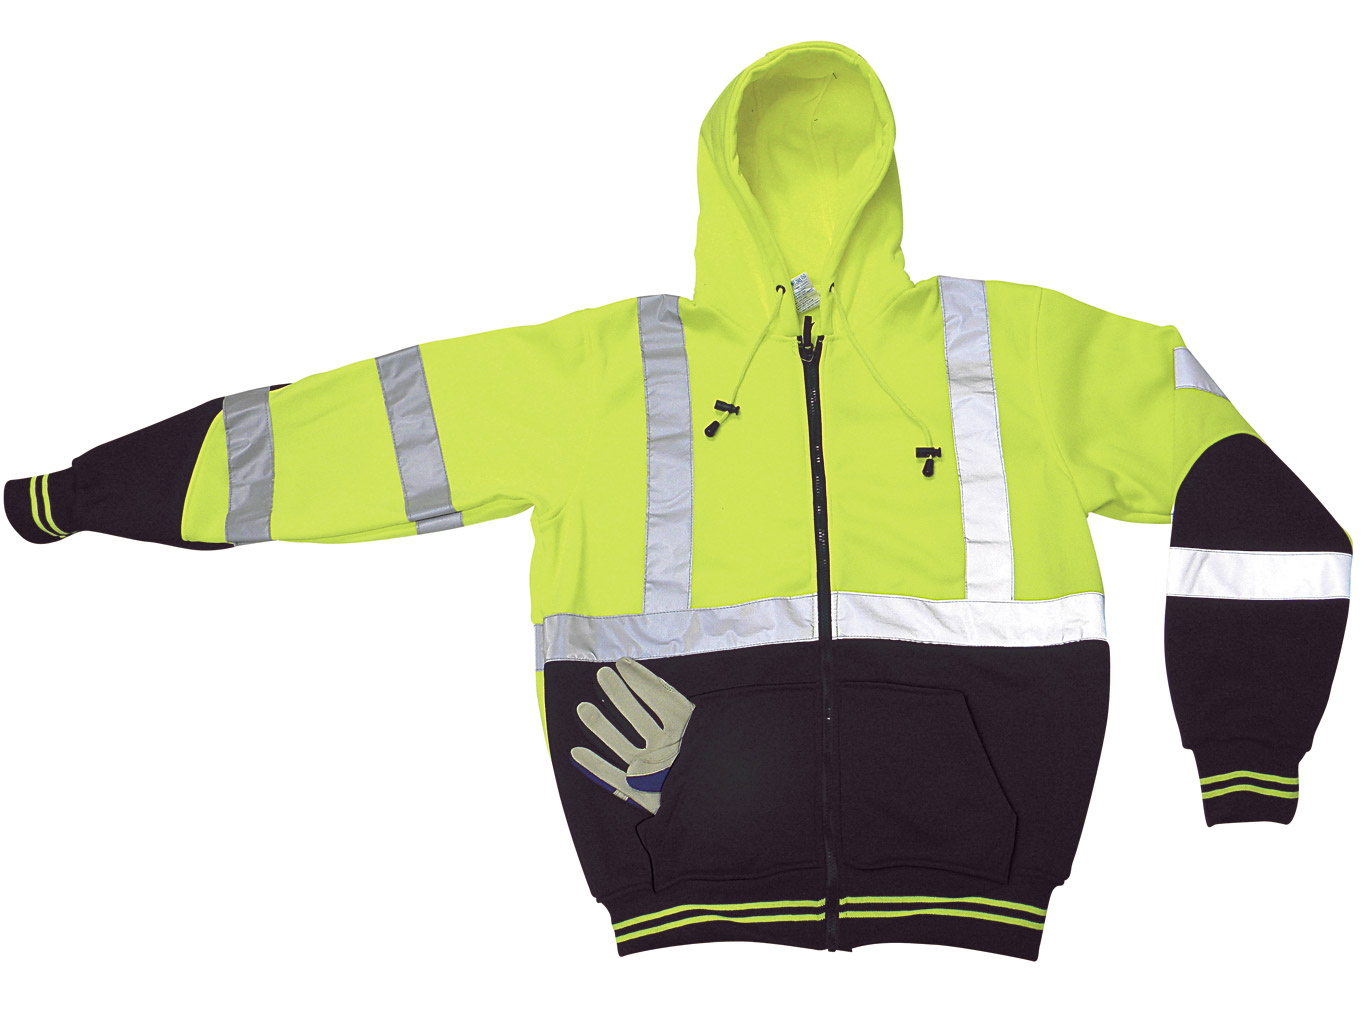 Yellow and Black Hi Viz Hooded Sweatshirt With Silver Reflective Stripes and Drawstrings